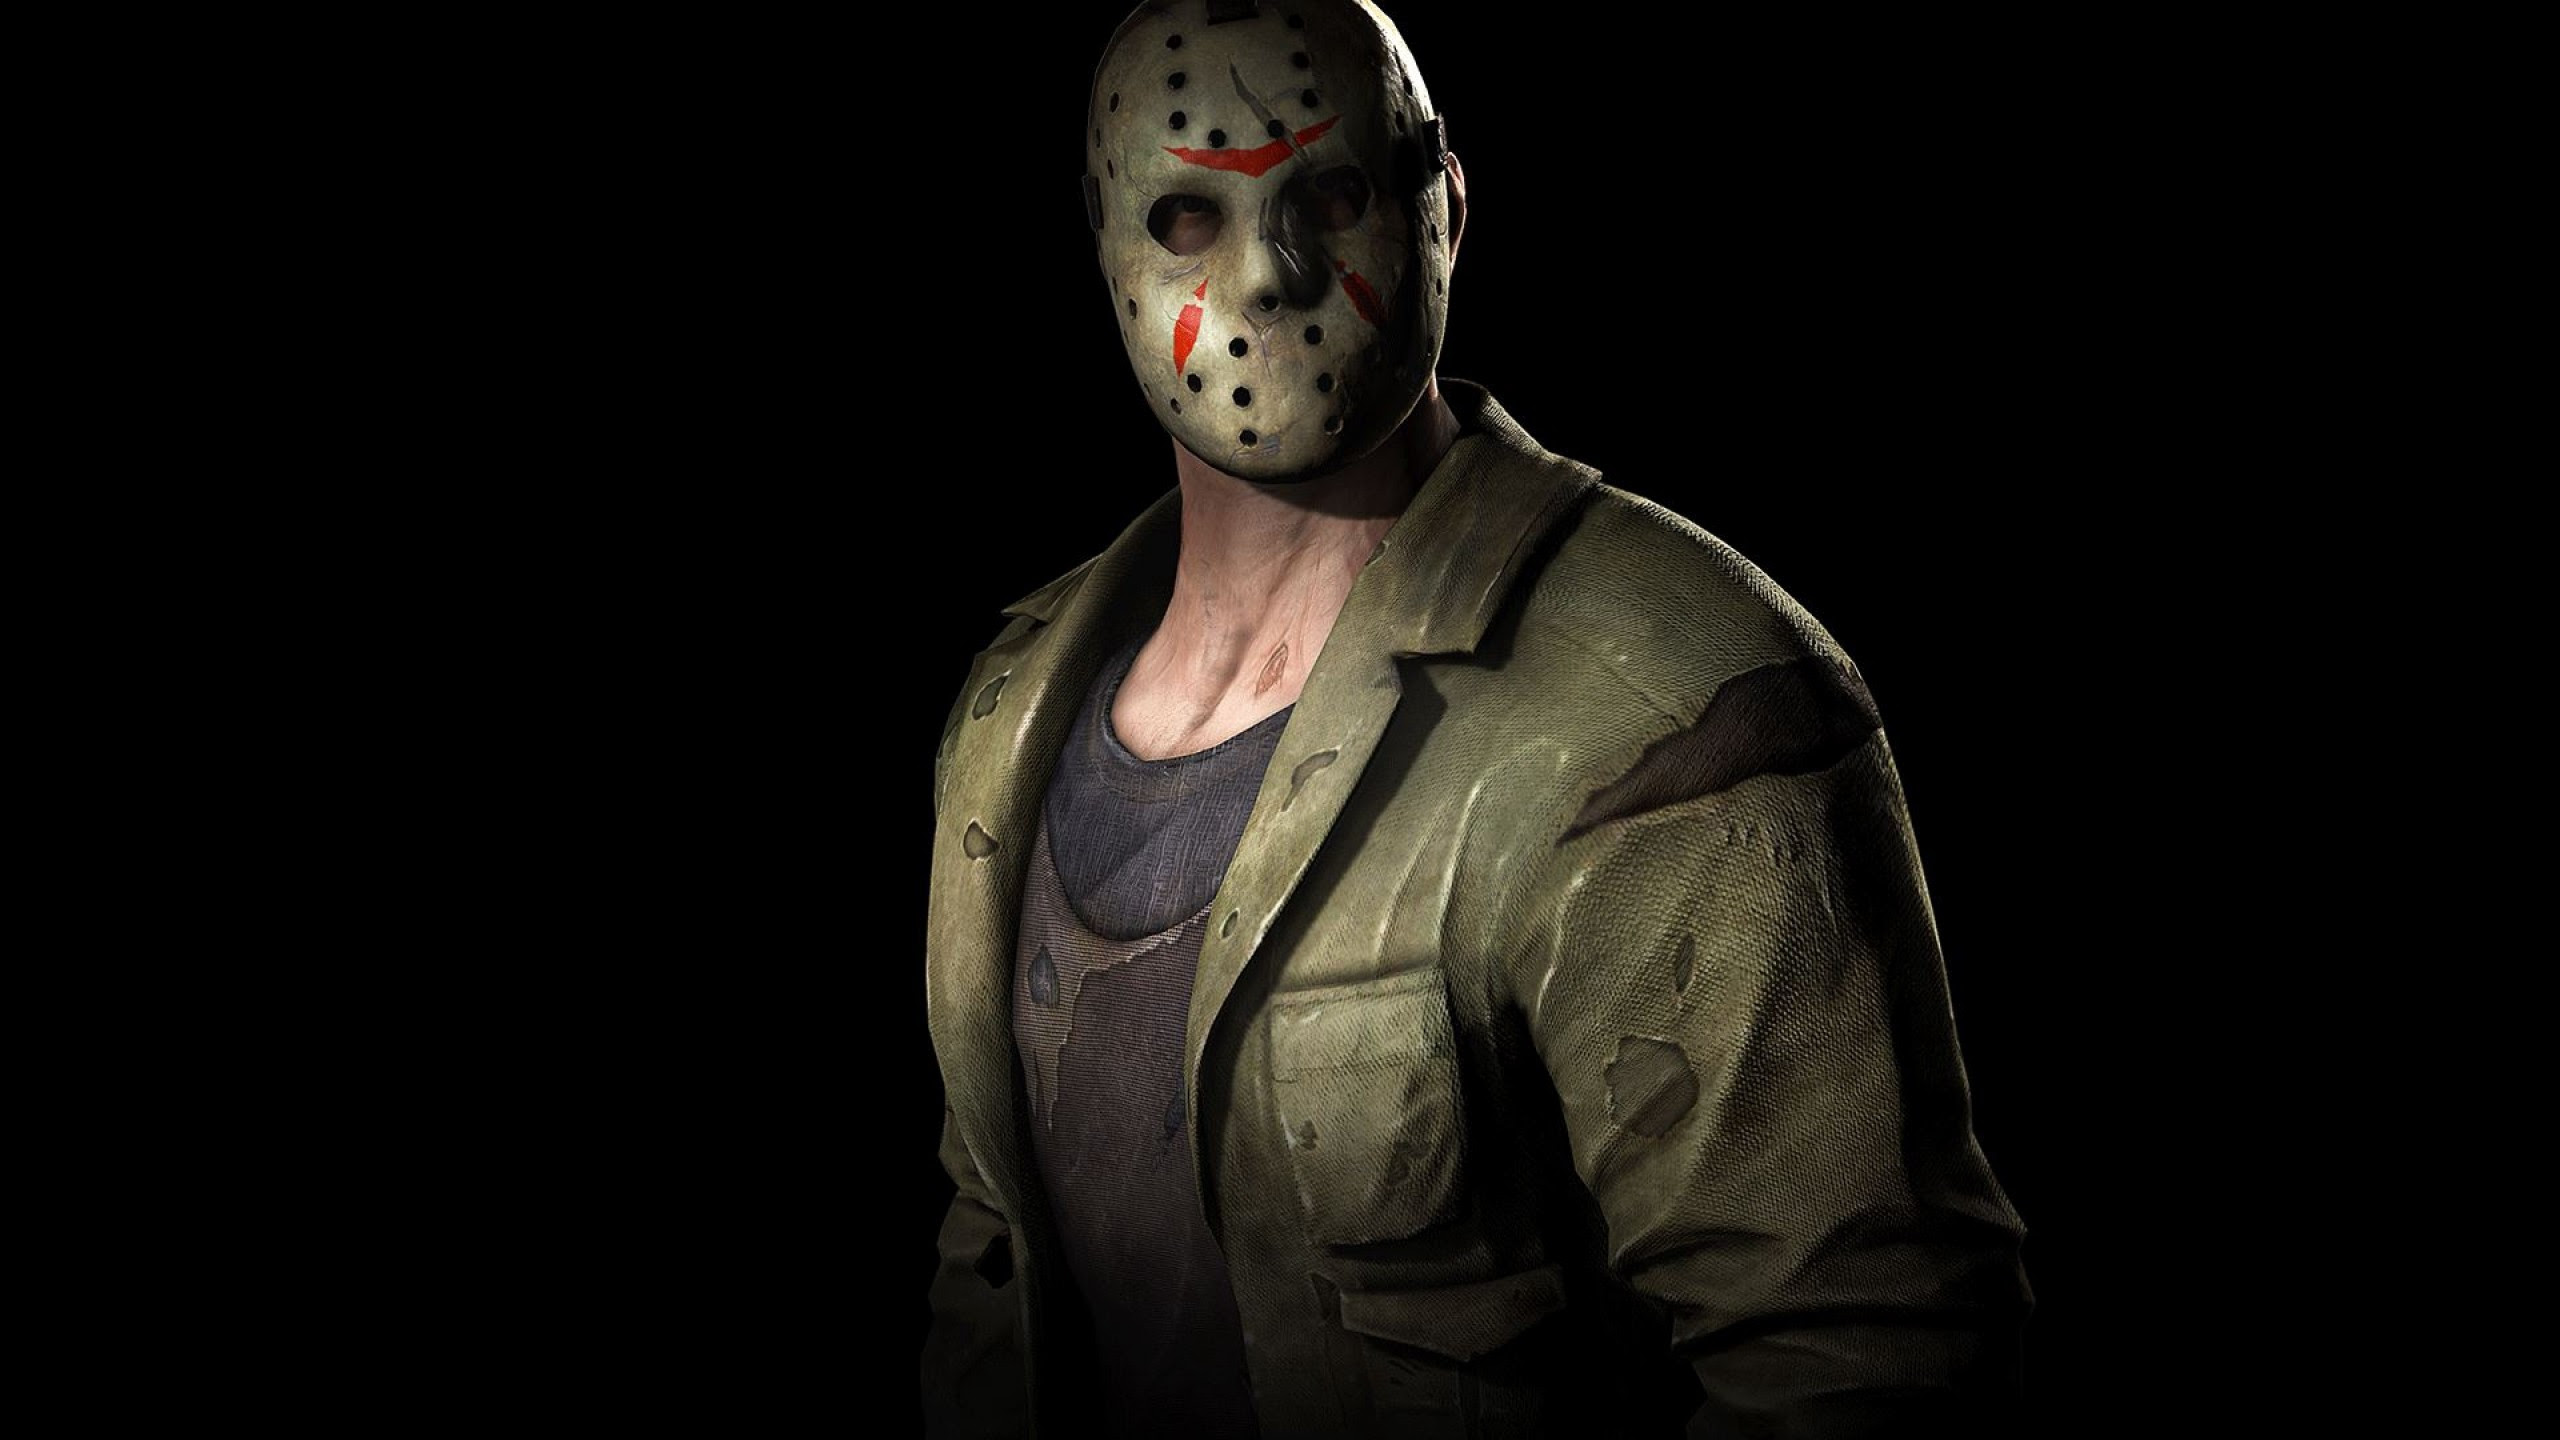 Friday The 13th Jason Hd Wallpaper Youtube Cover Photo Hd